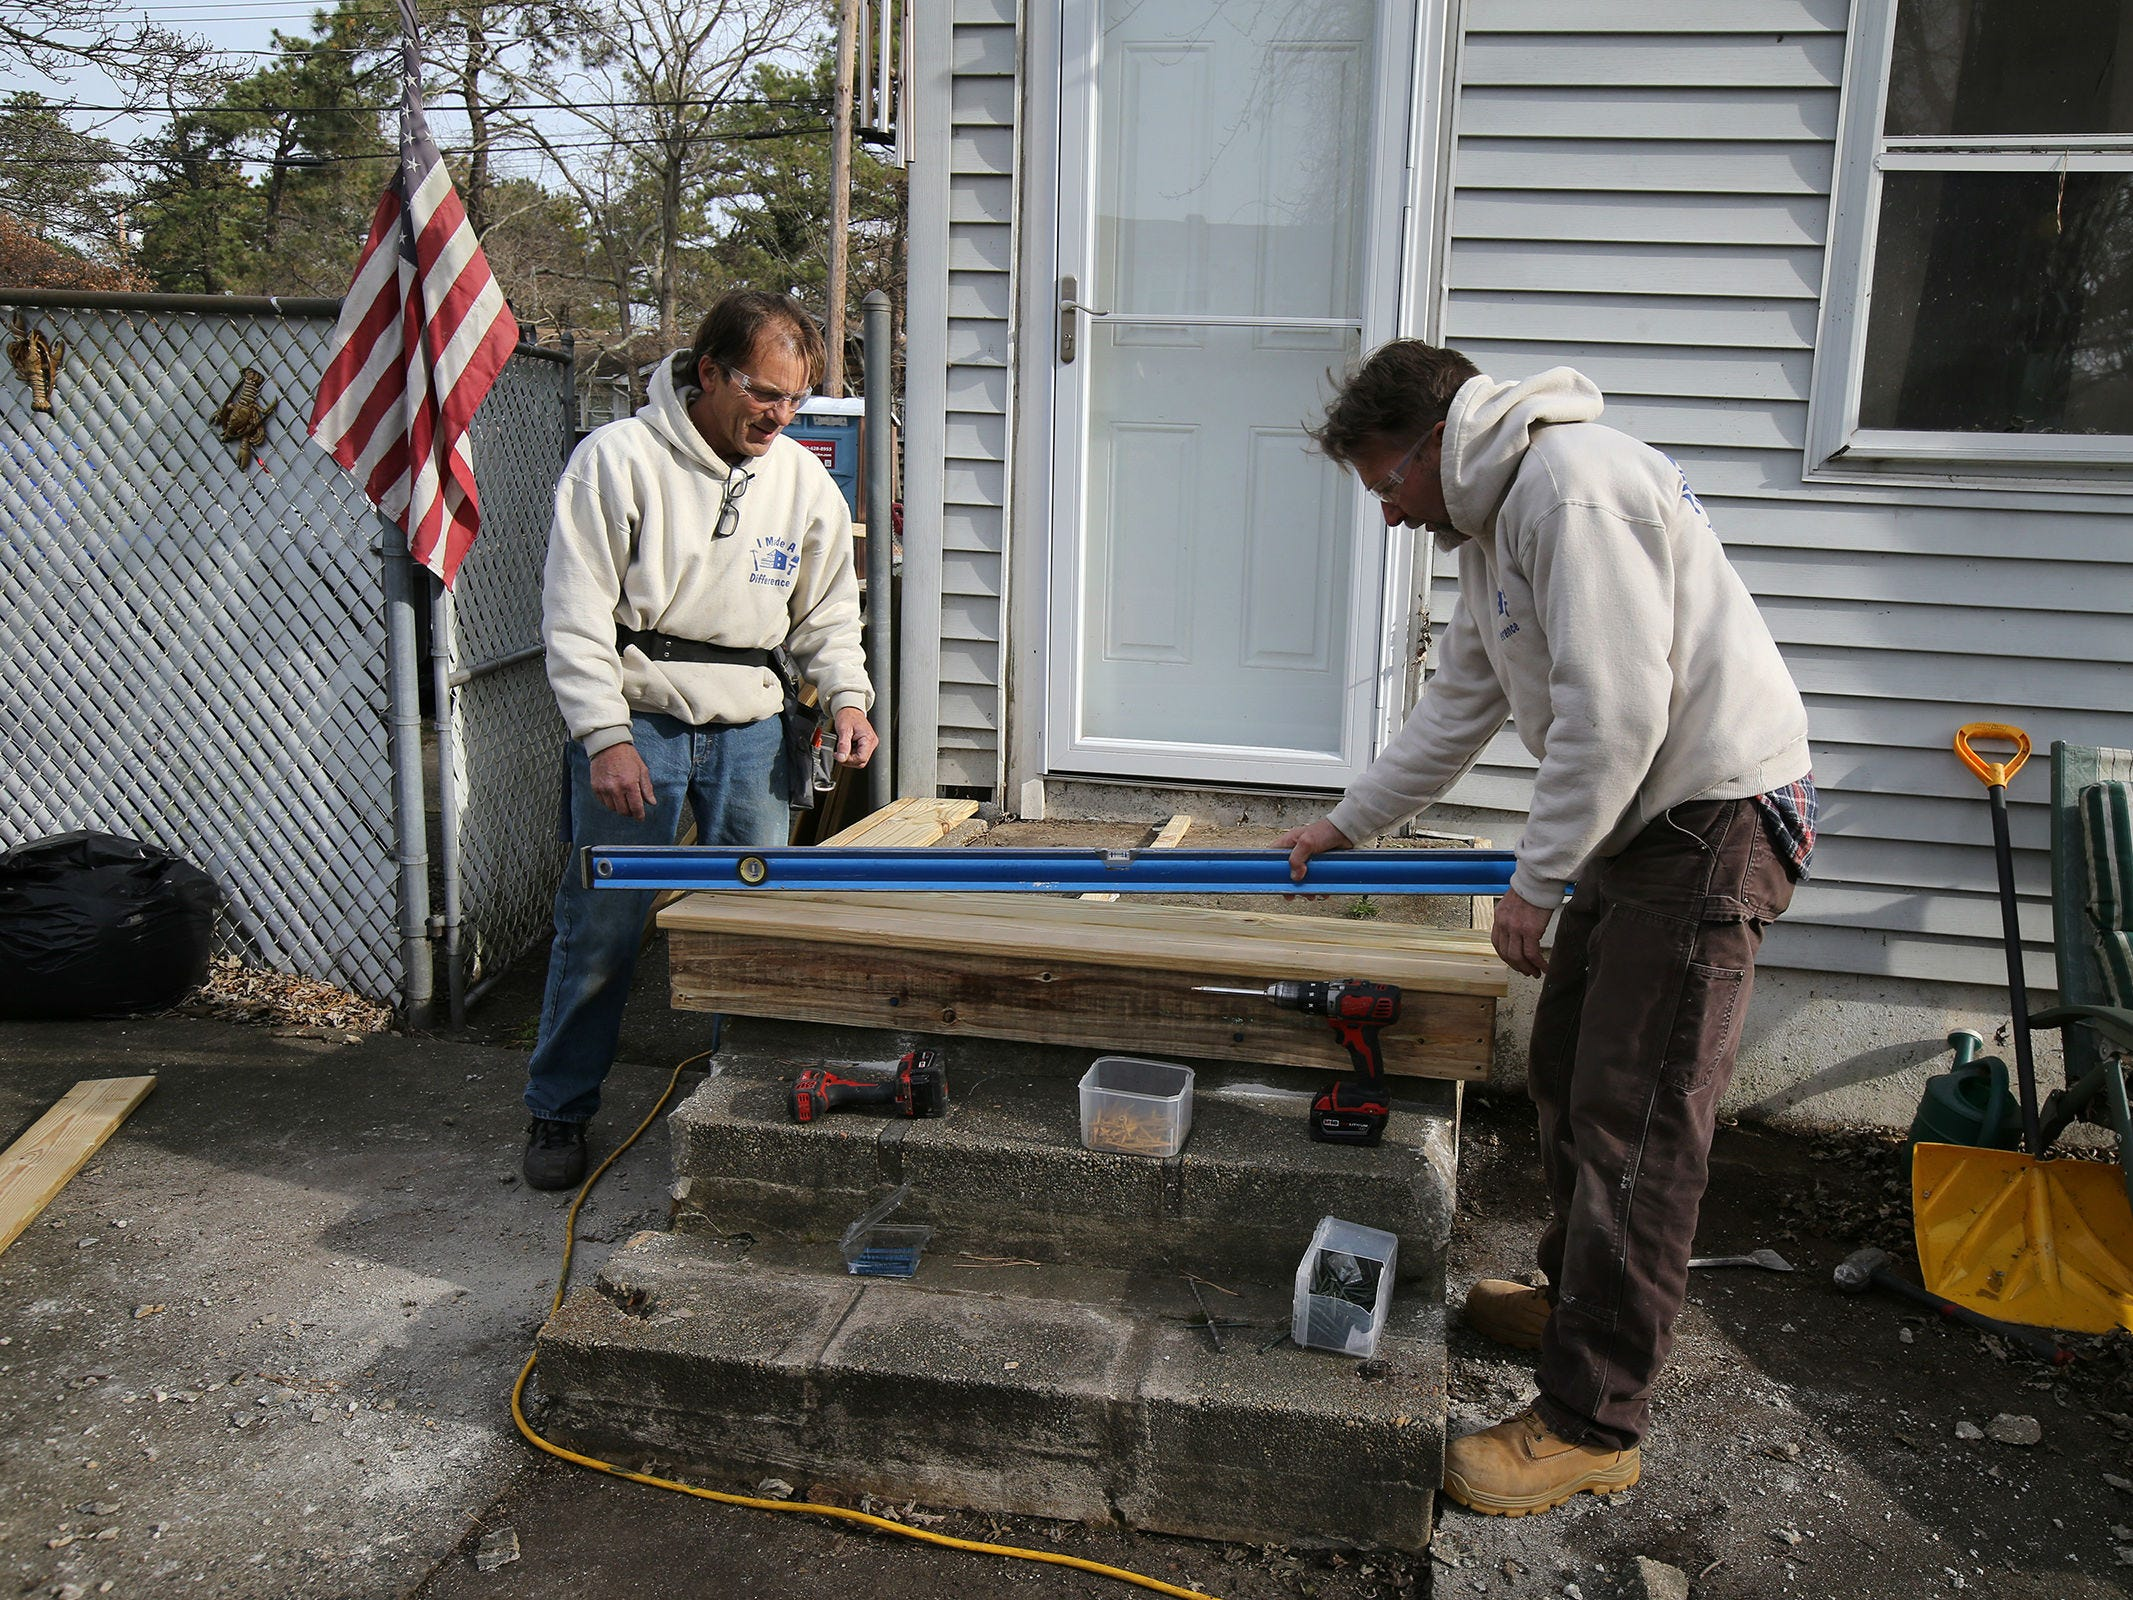 Todd Reinhardt of Seaside Park, construction foreman for Northern Ocean Habitat for Humanity, and Bob Conway of Whiting, construction supervisor for Northern Ocean Habitat for Humanity, work on the home of Korean War veteran Walter Brandon, 85, and wife Patricia, which is Northern Ocean Habitat for Humanity's 200th home repair, in Brick, NJ Thursday, December 6, 2018.